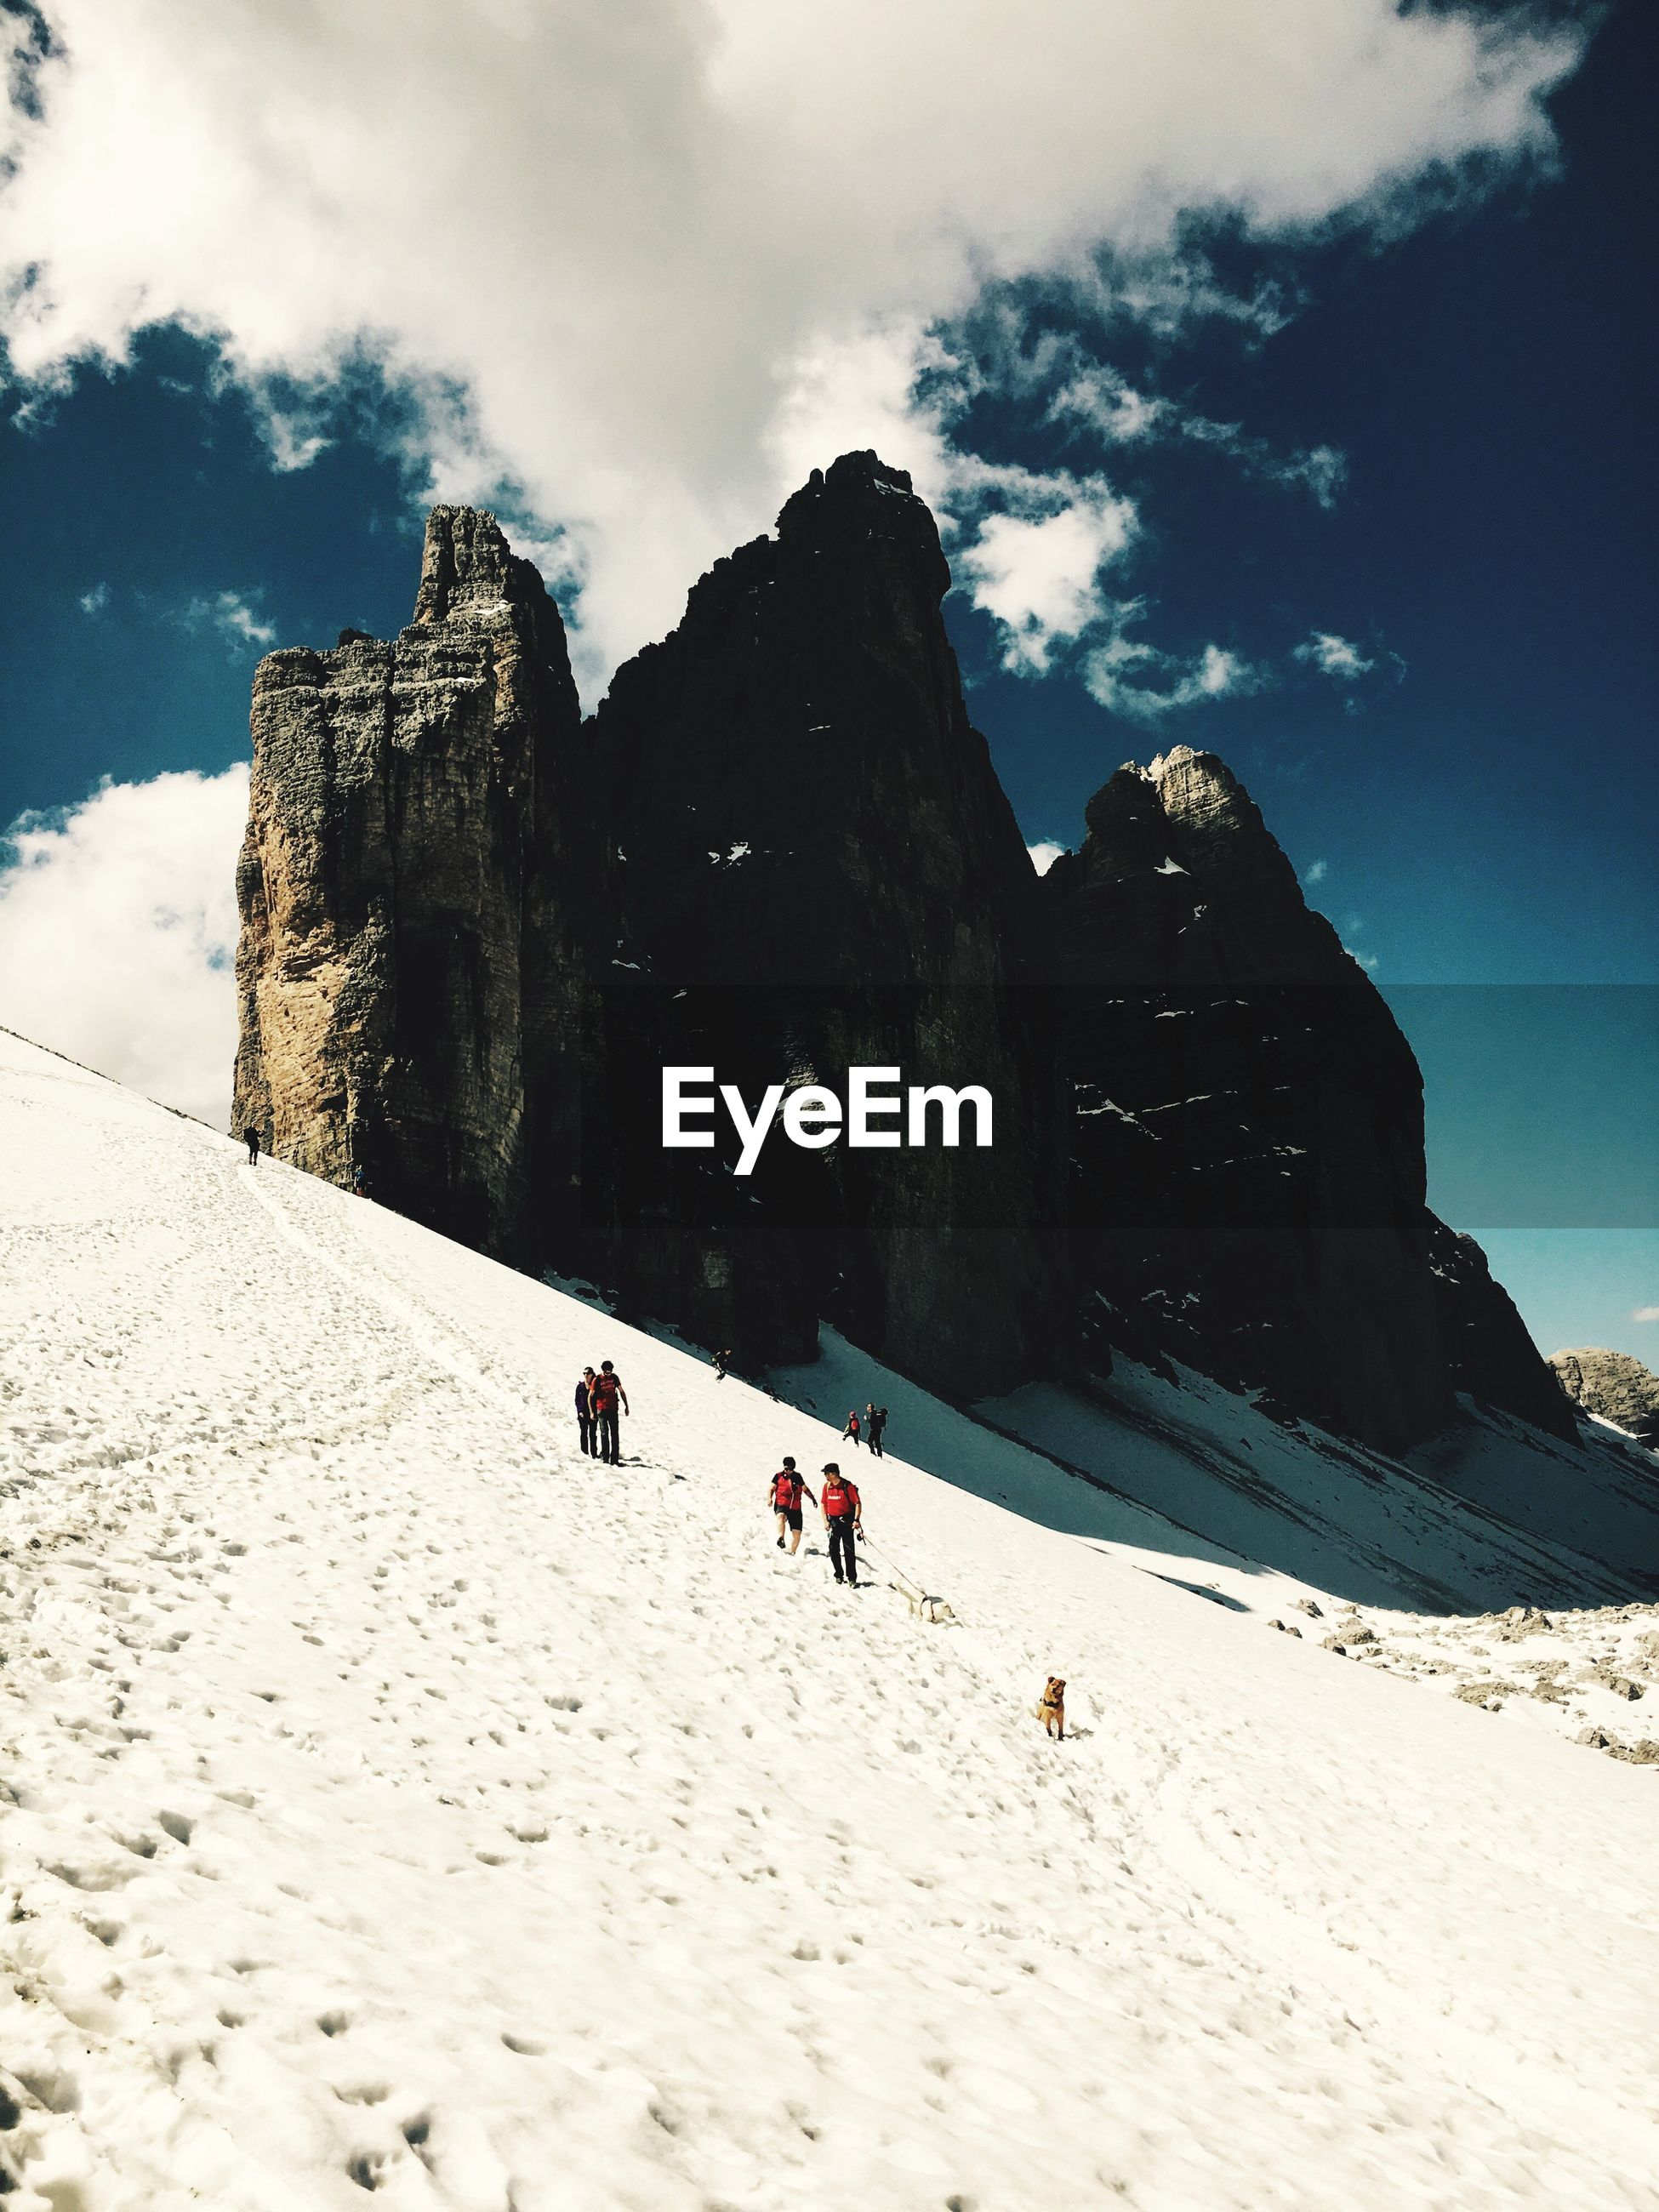 Low angle view of people on snowcapped mountain against cloudy sky